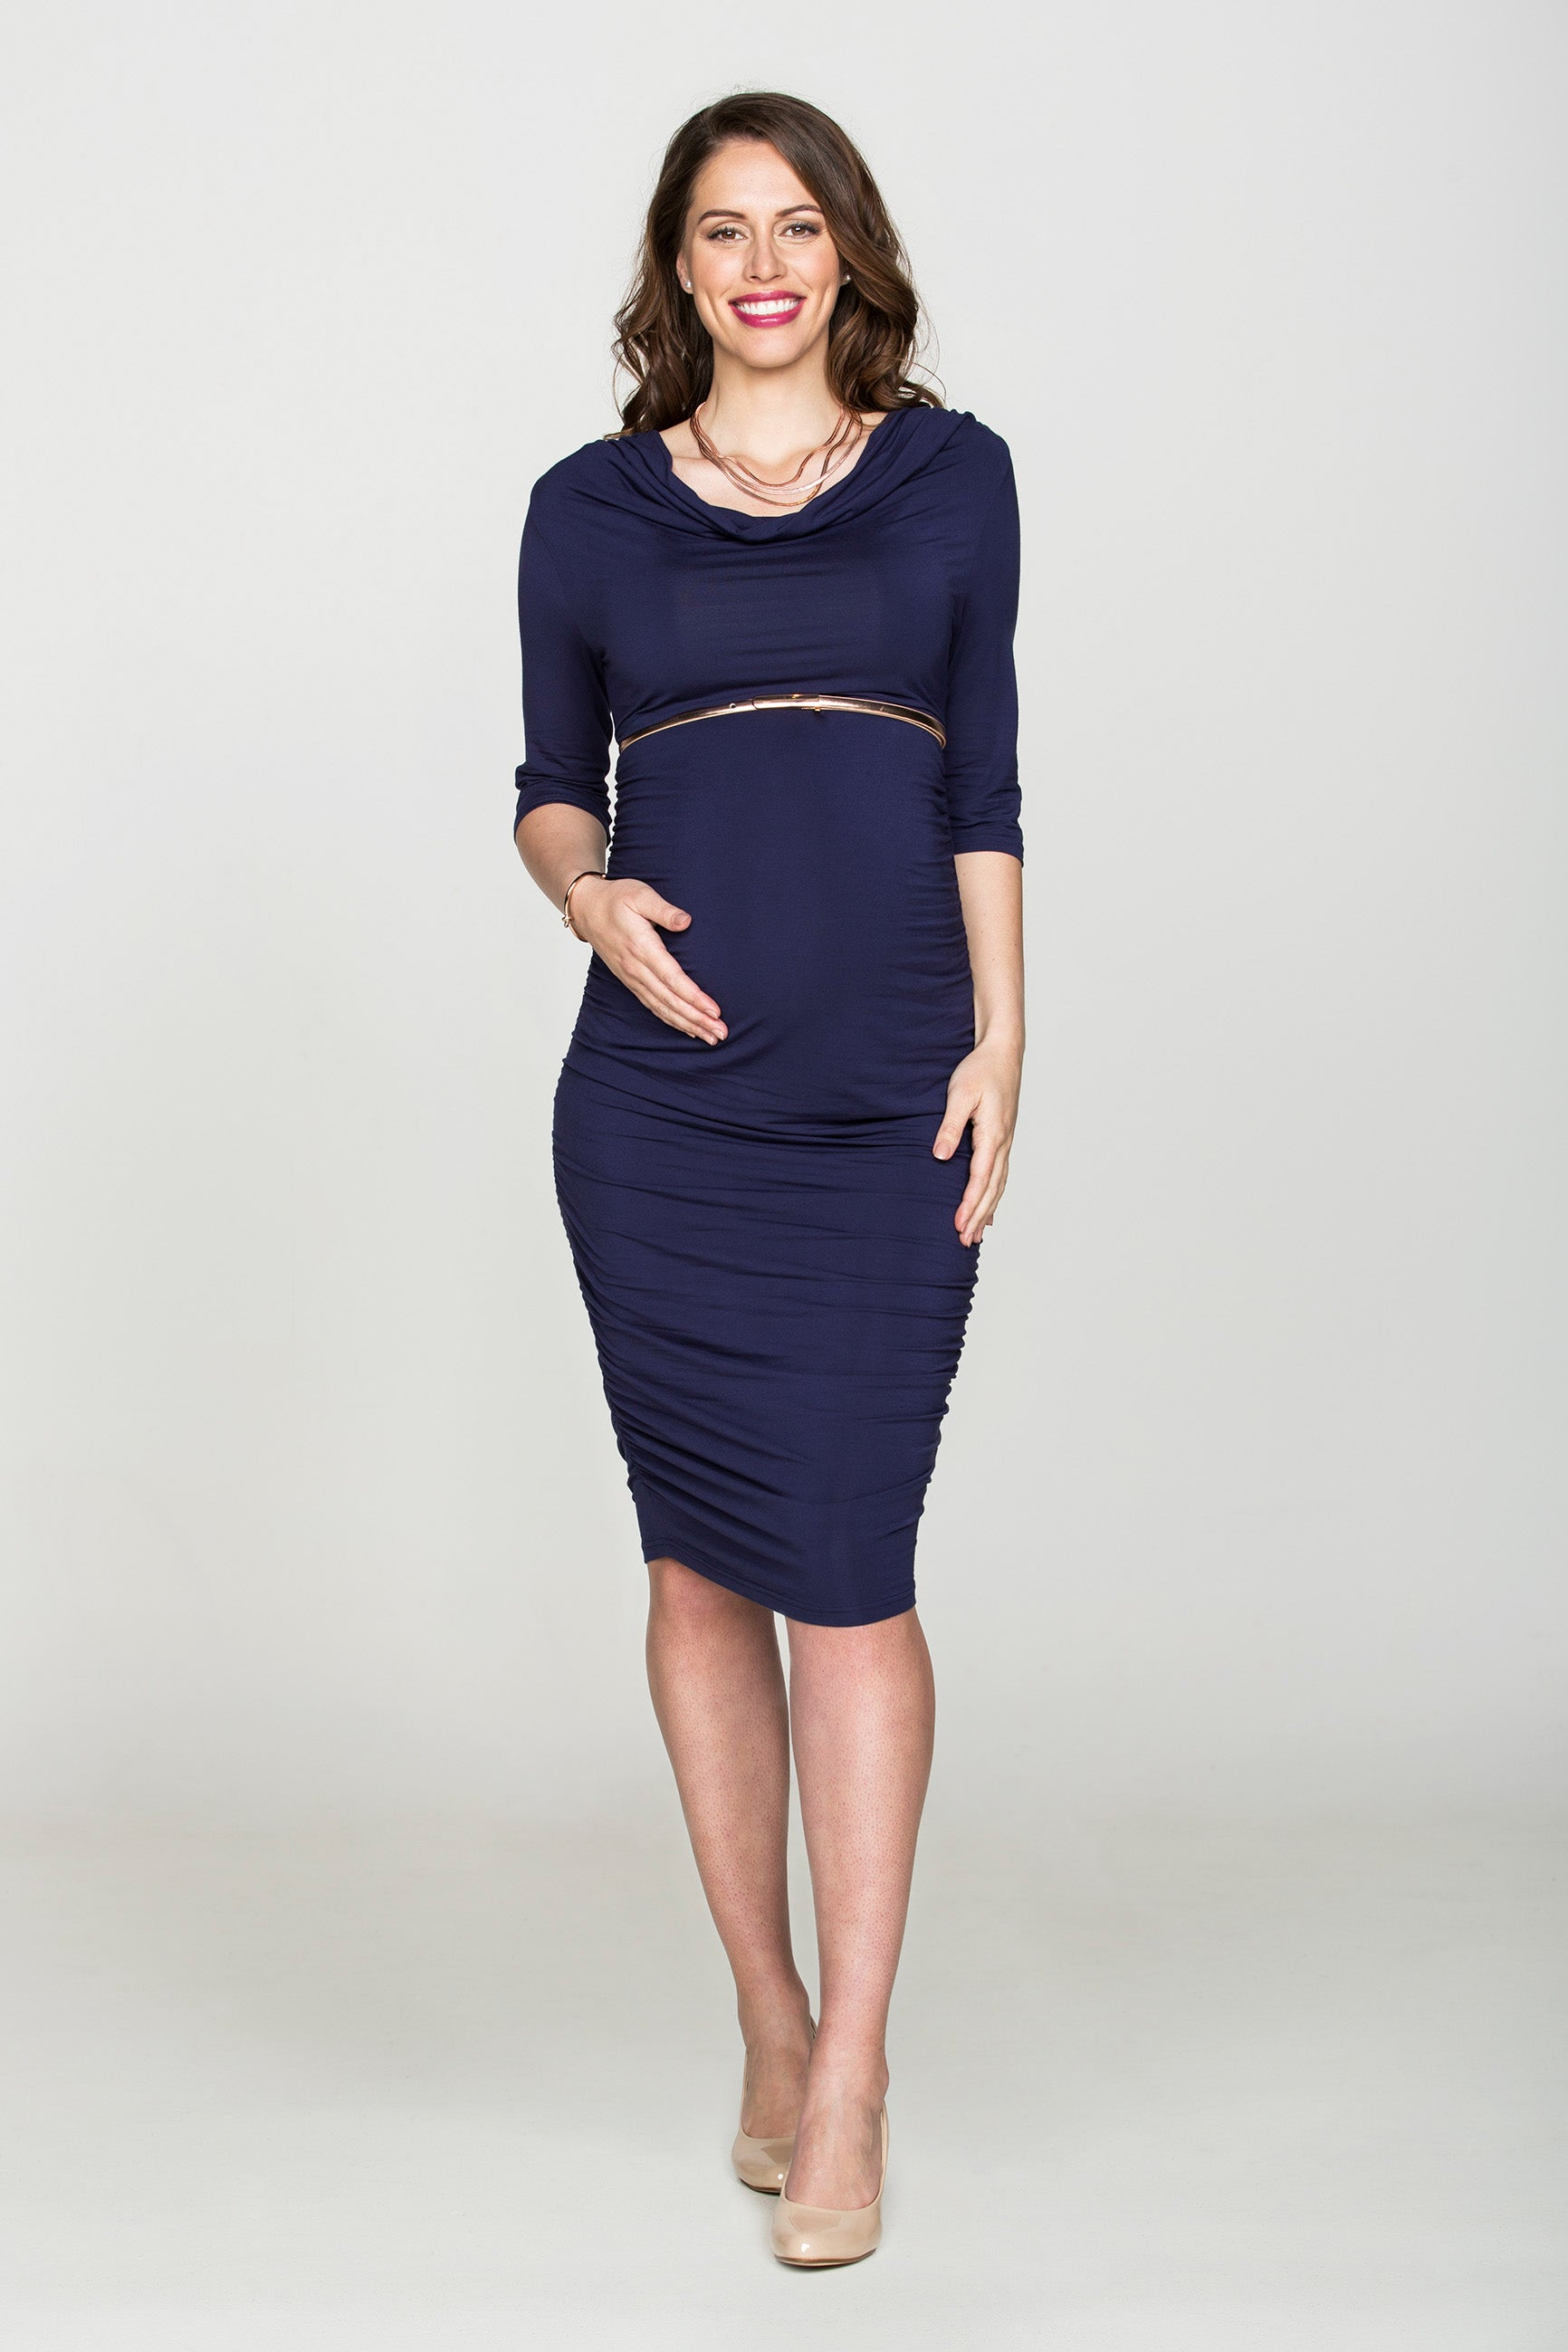 Divine Sapphire Dress - Bubba Belly Maternity Wear